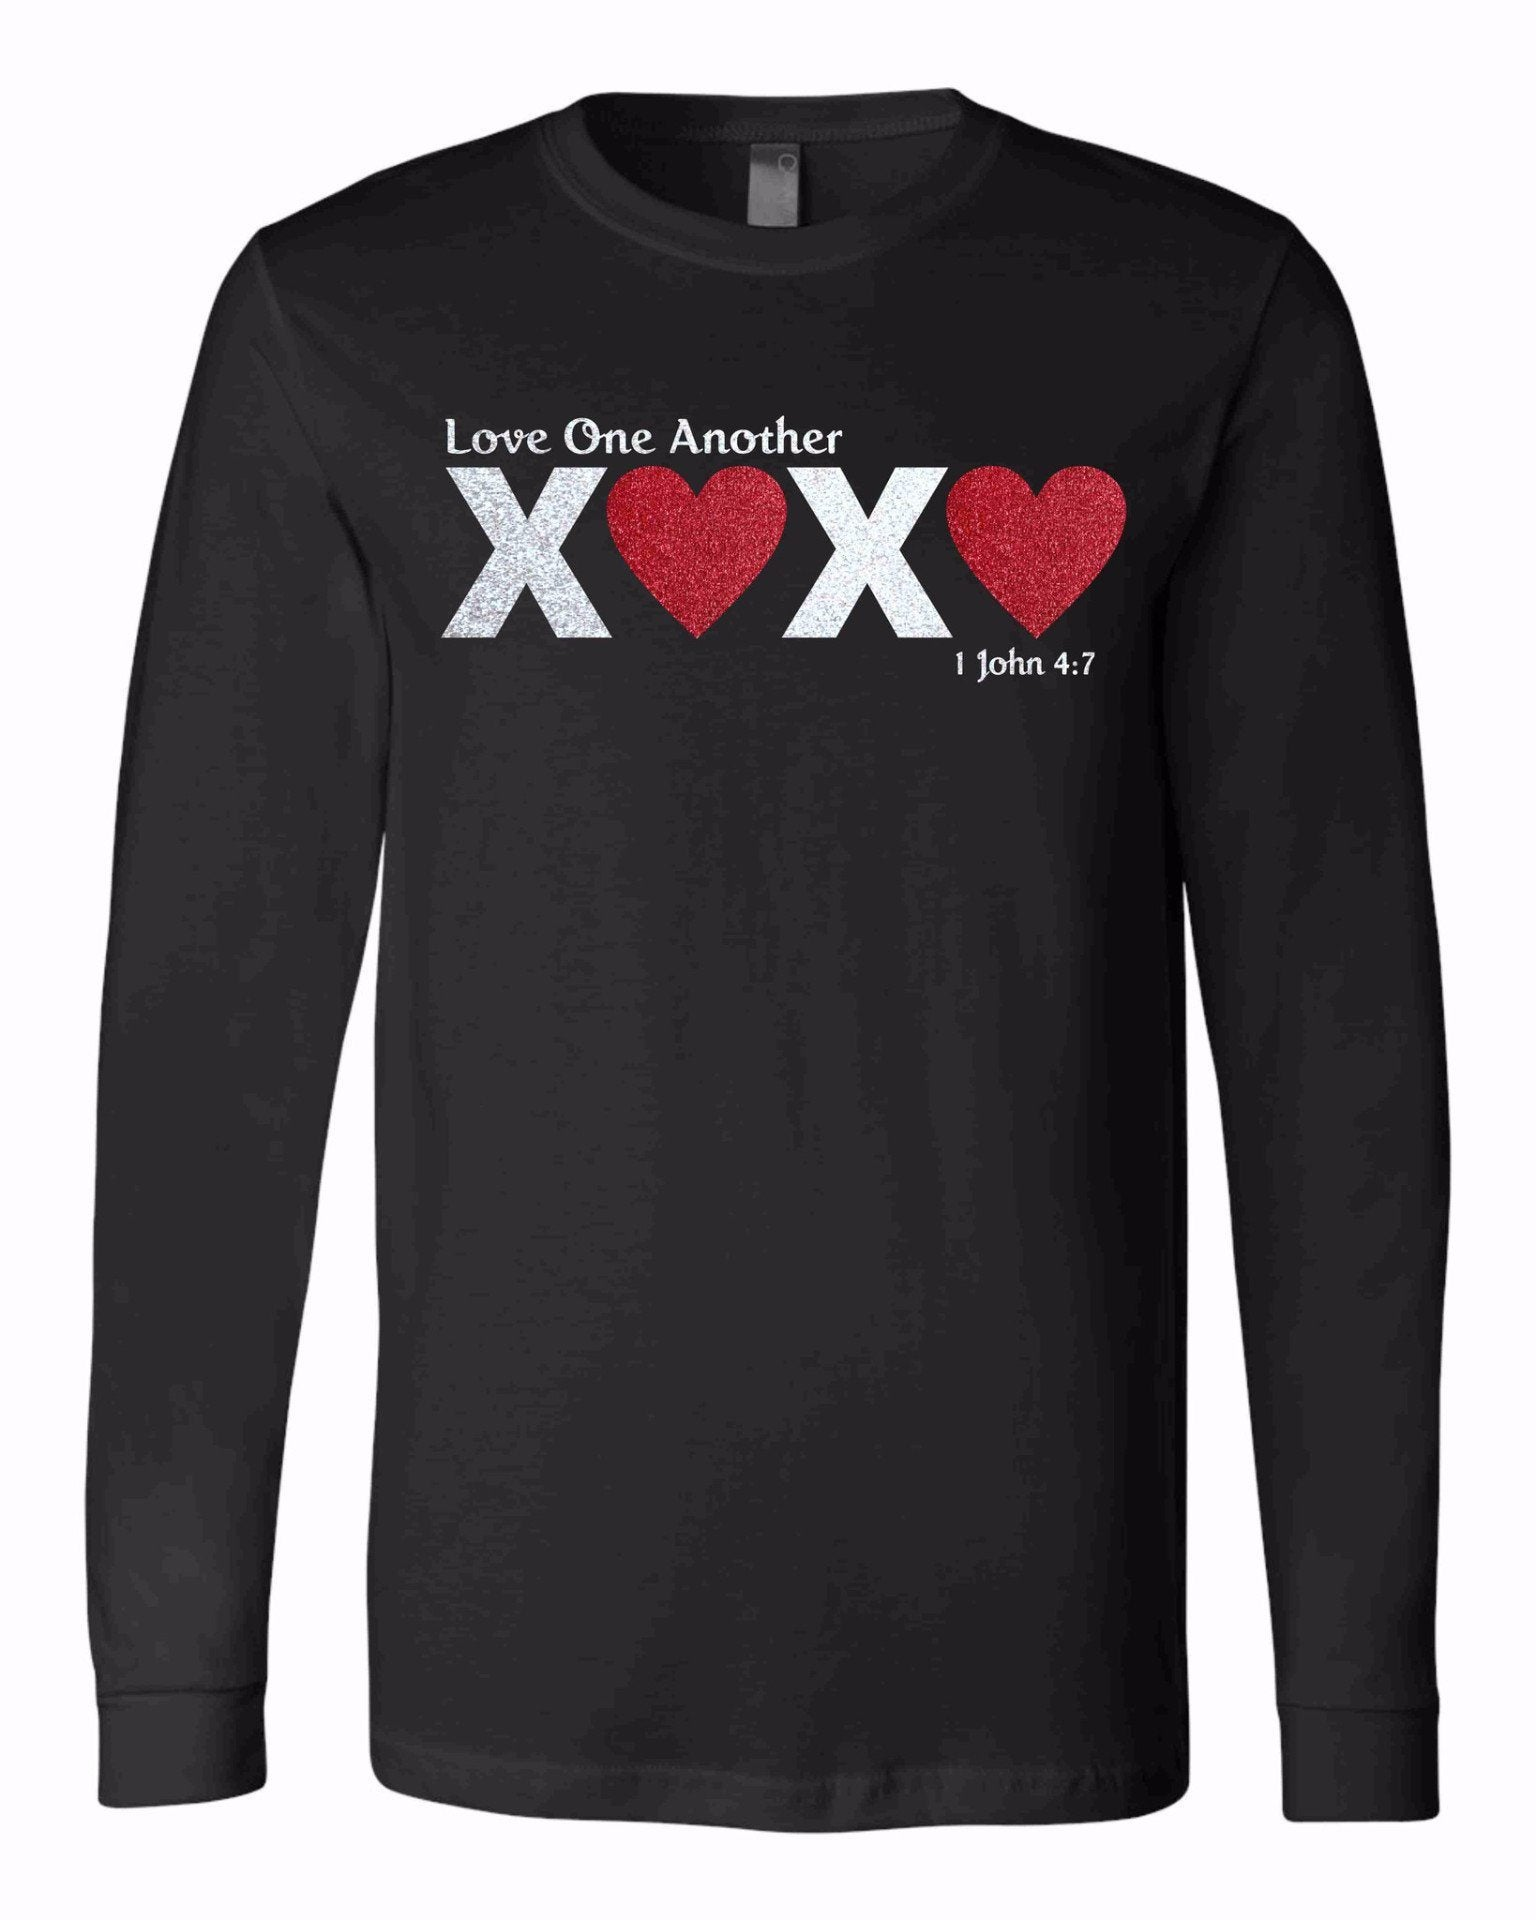 Shirt - XOXO LOVE One Another Shirt